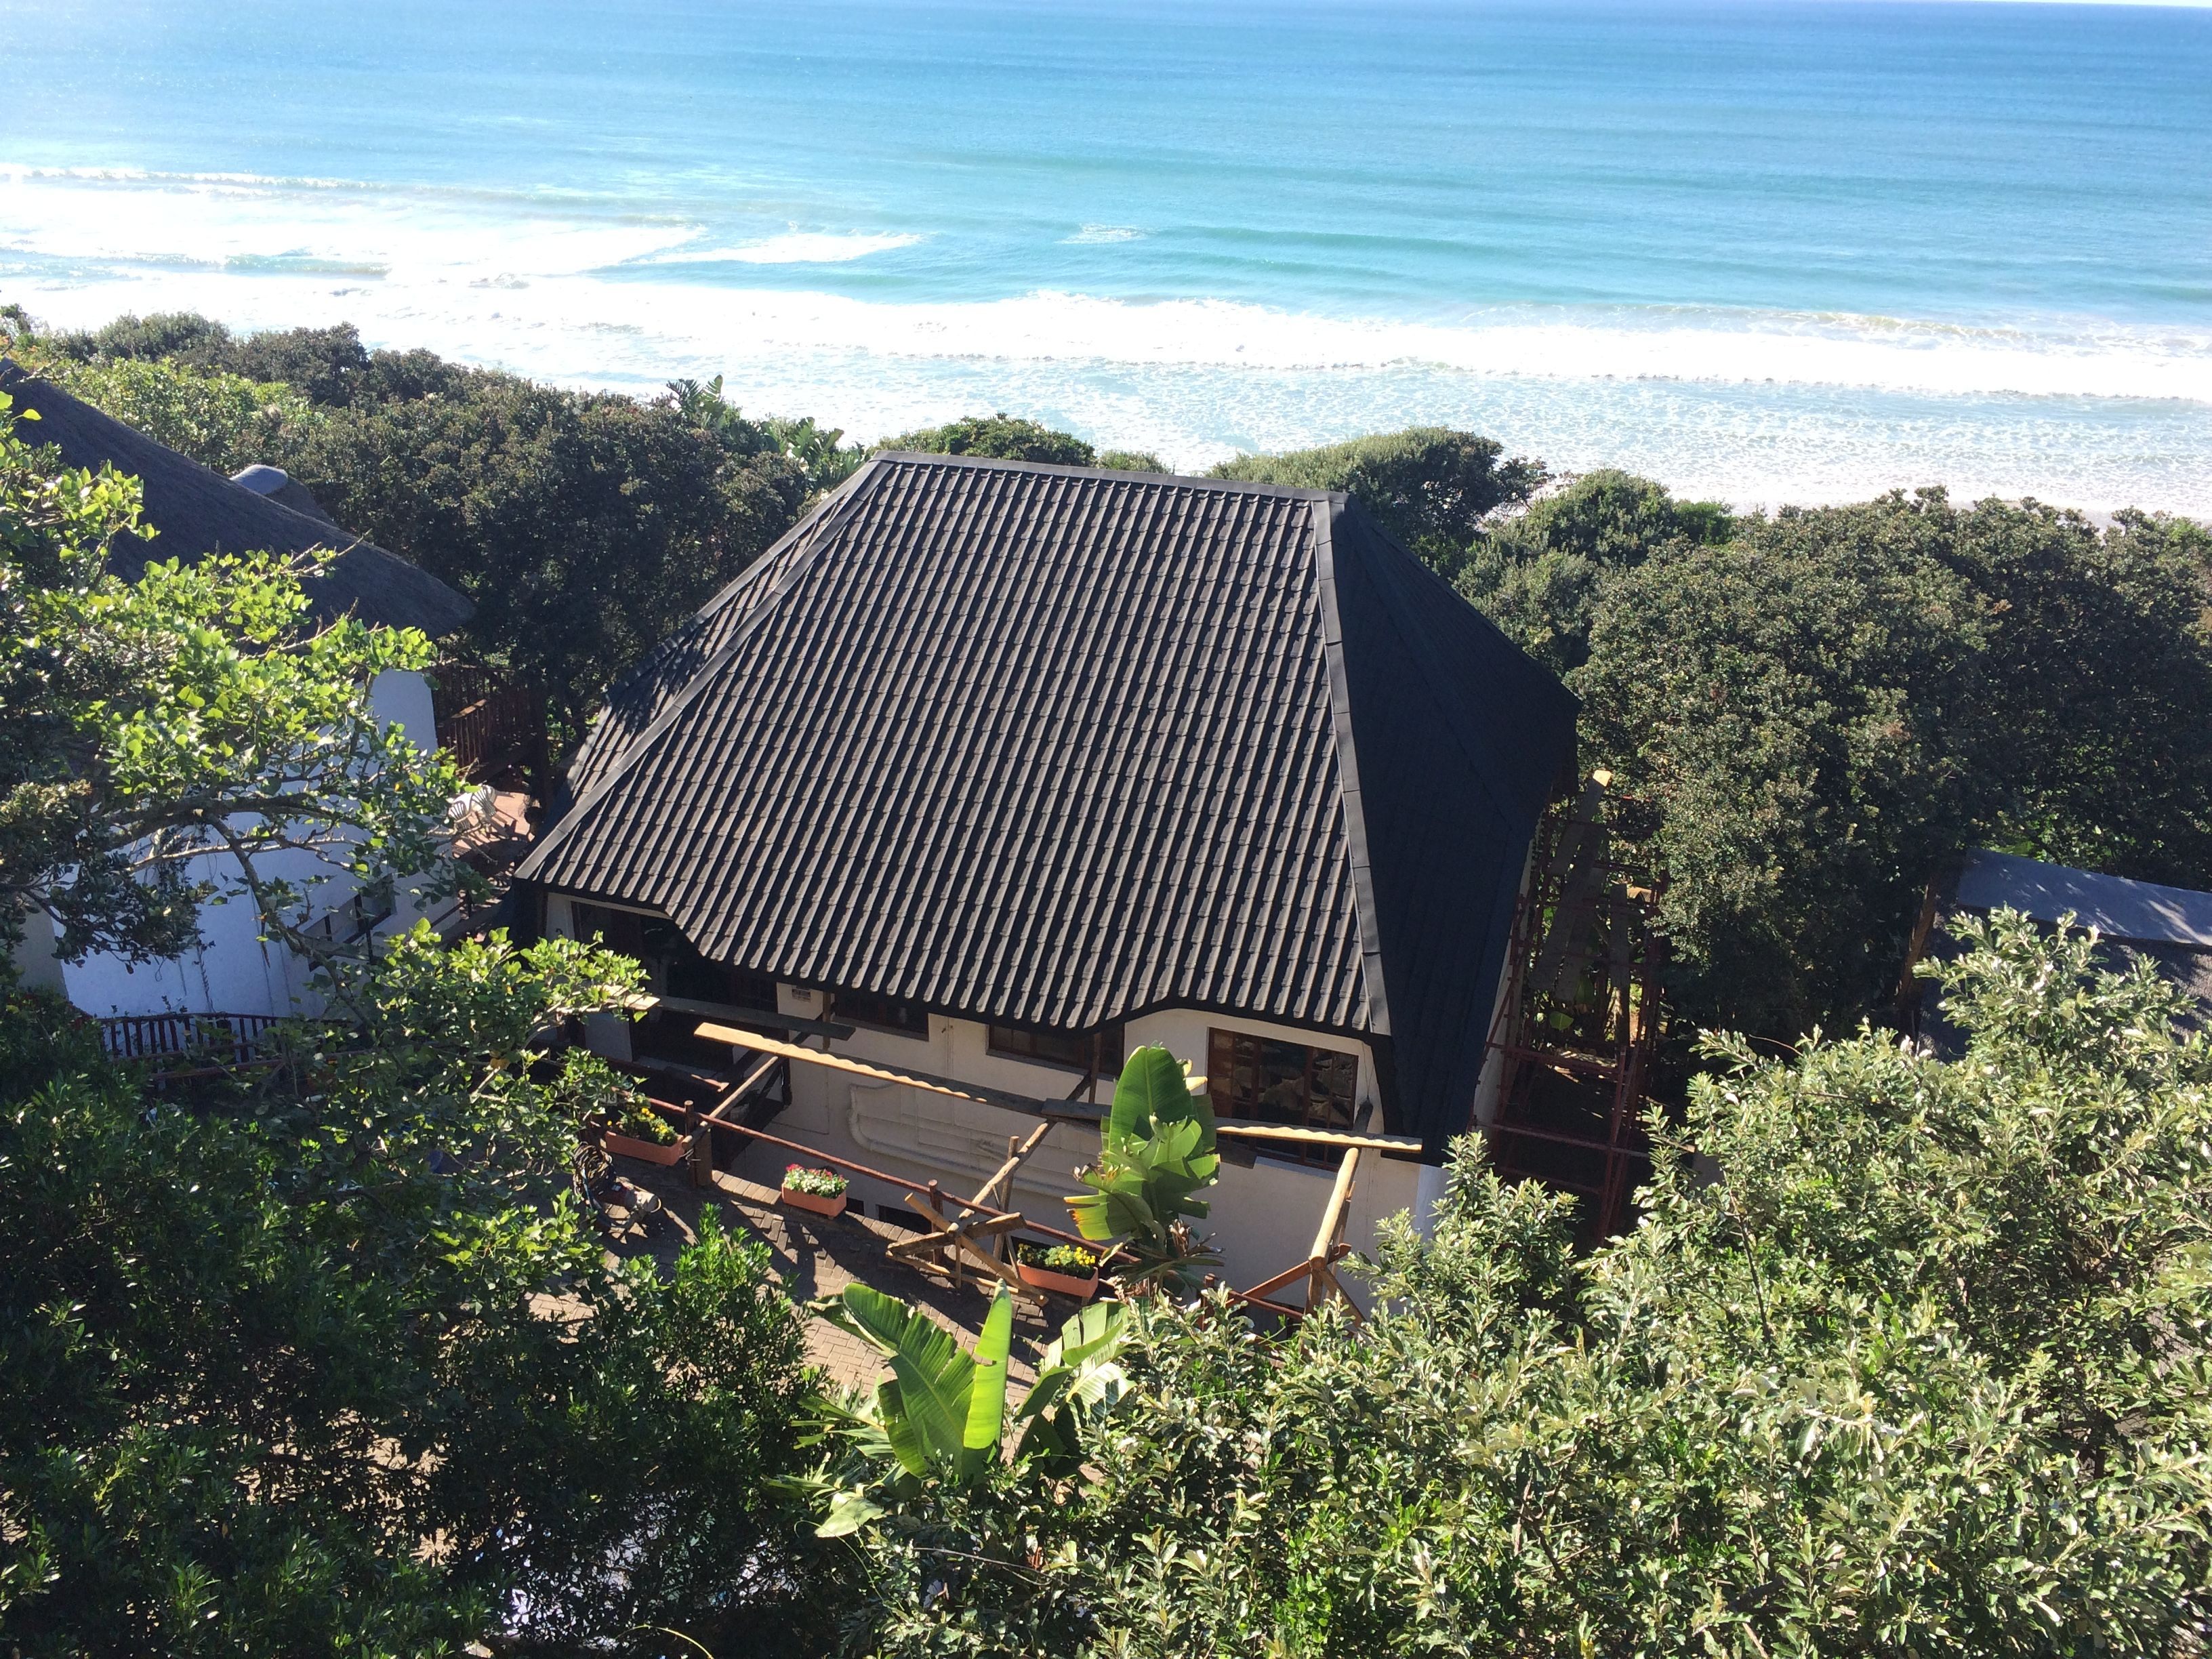 Thatch Roof Converted To Charcoal Grey Onduvilla Tiles In Cintsa Eastern Cape South Africa Thatched Roof Thatch Roof